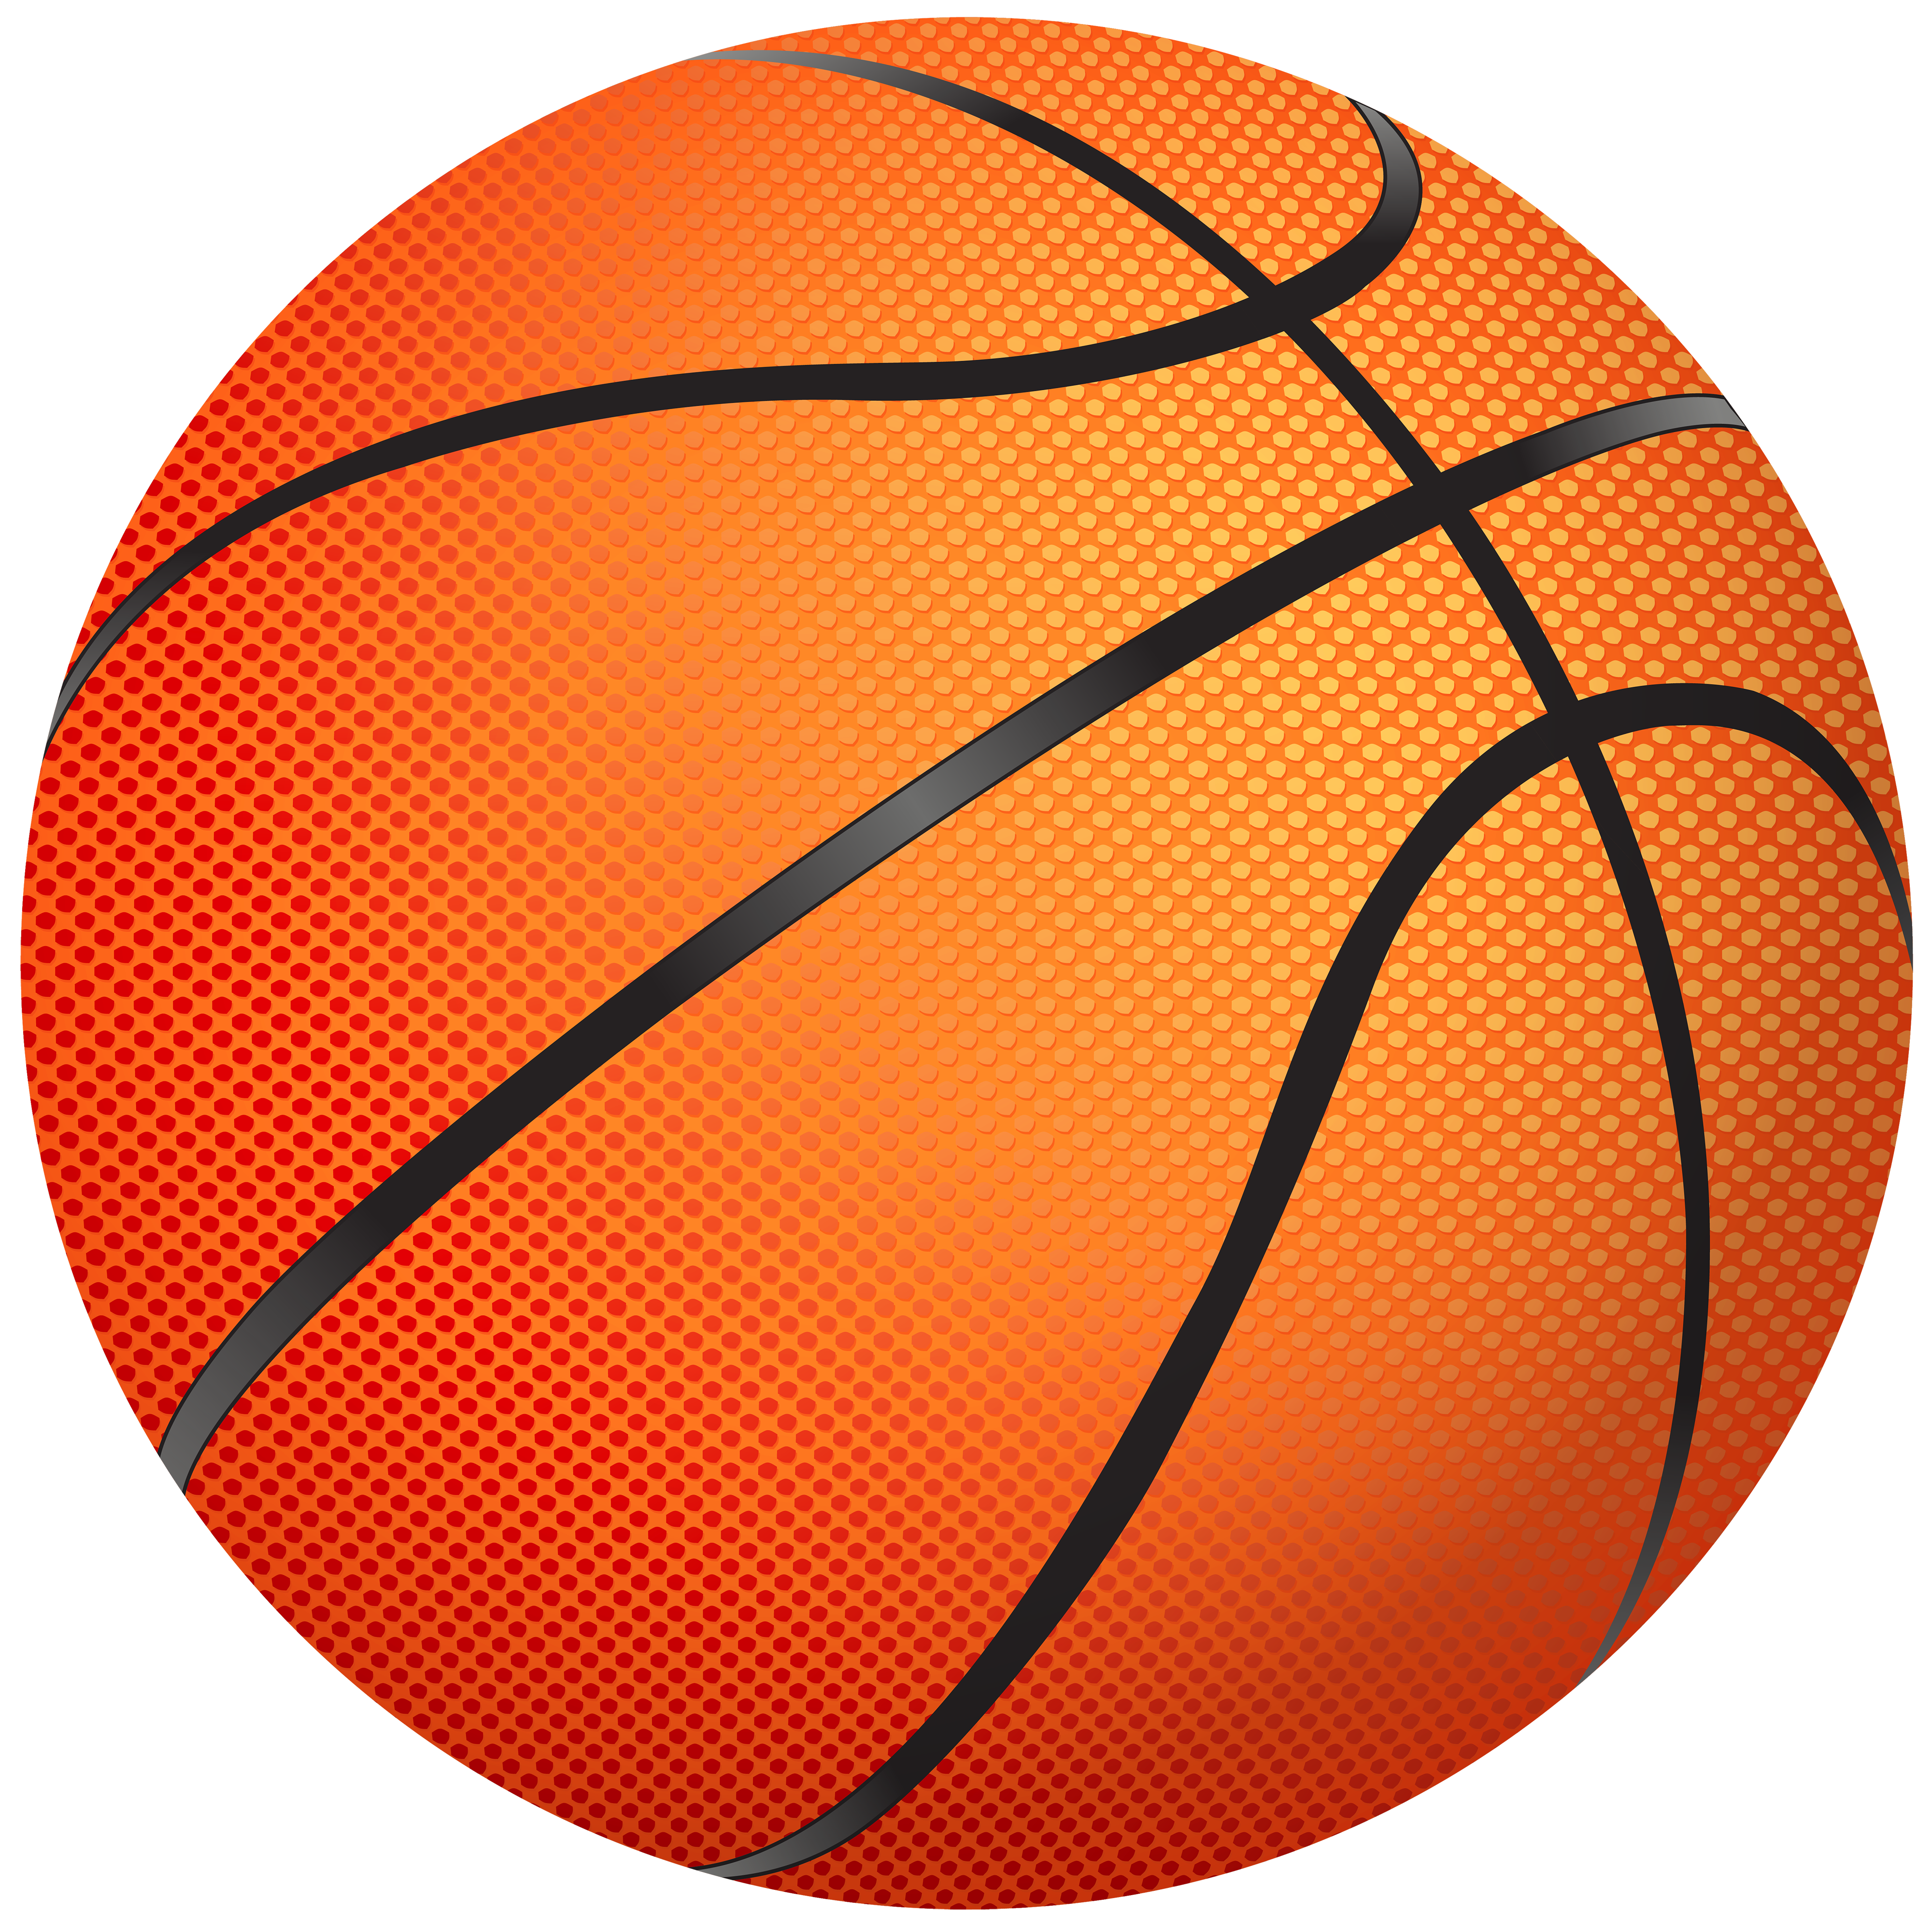 Baketball clipart image transparent stock Basketball PNG Clipart - Best WEB Clipart image transparent stock